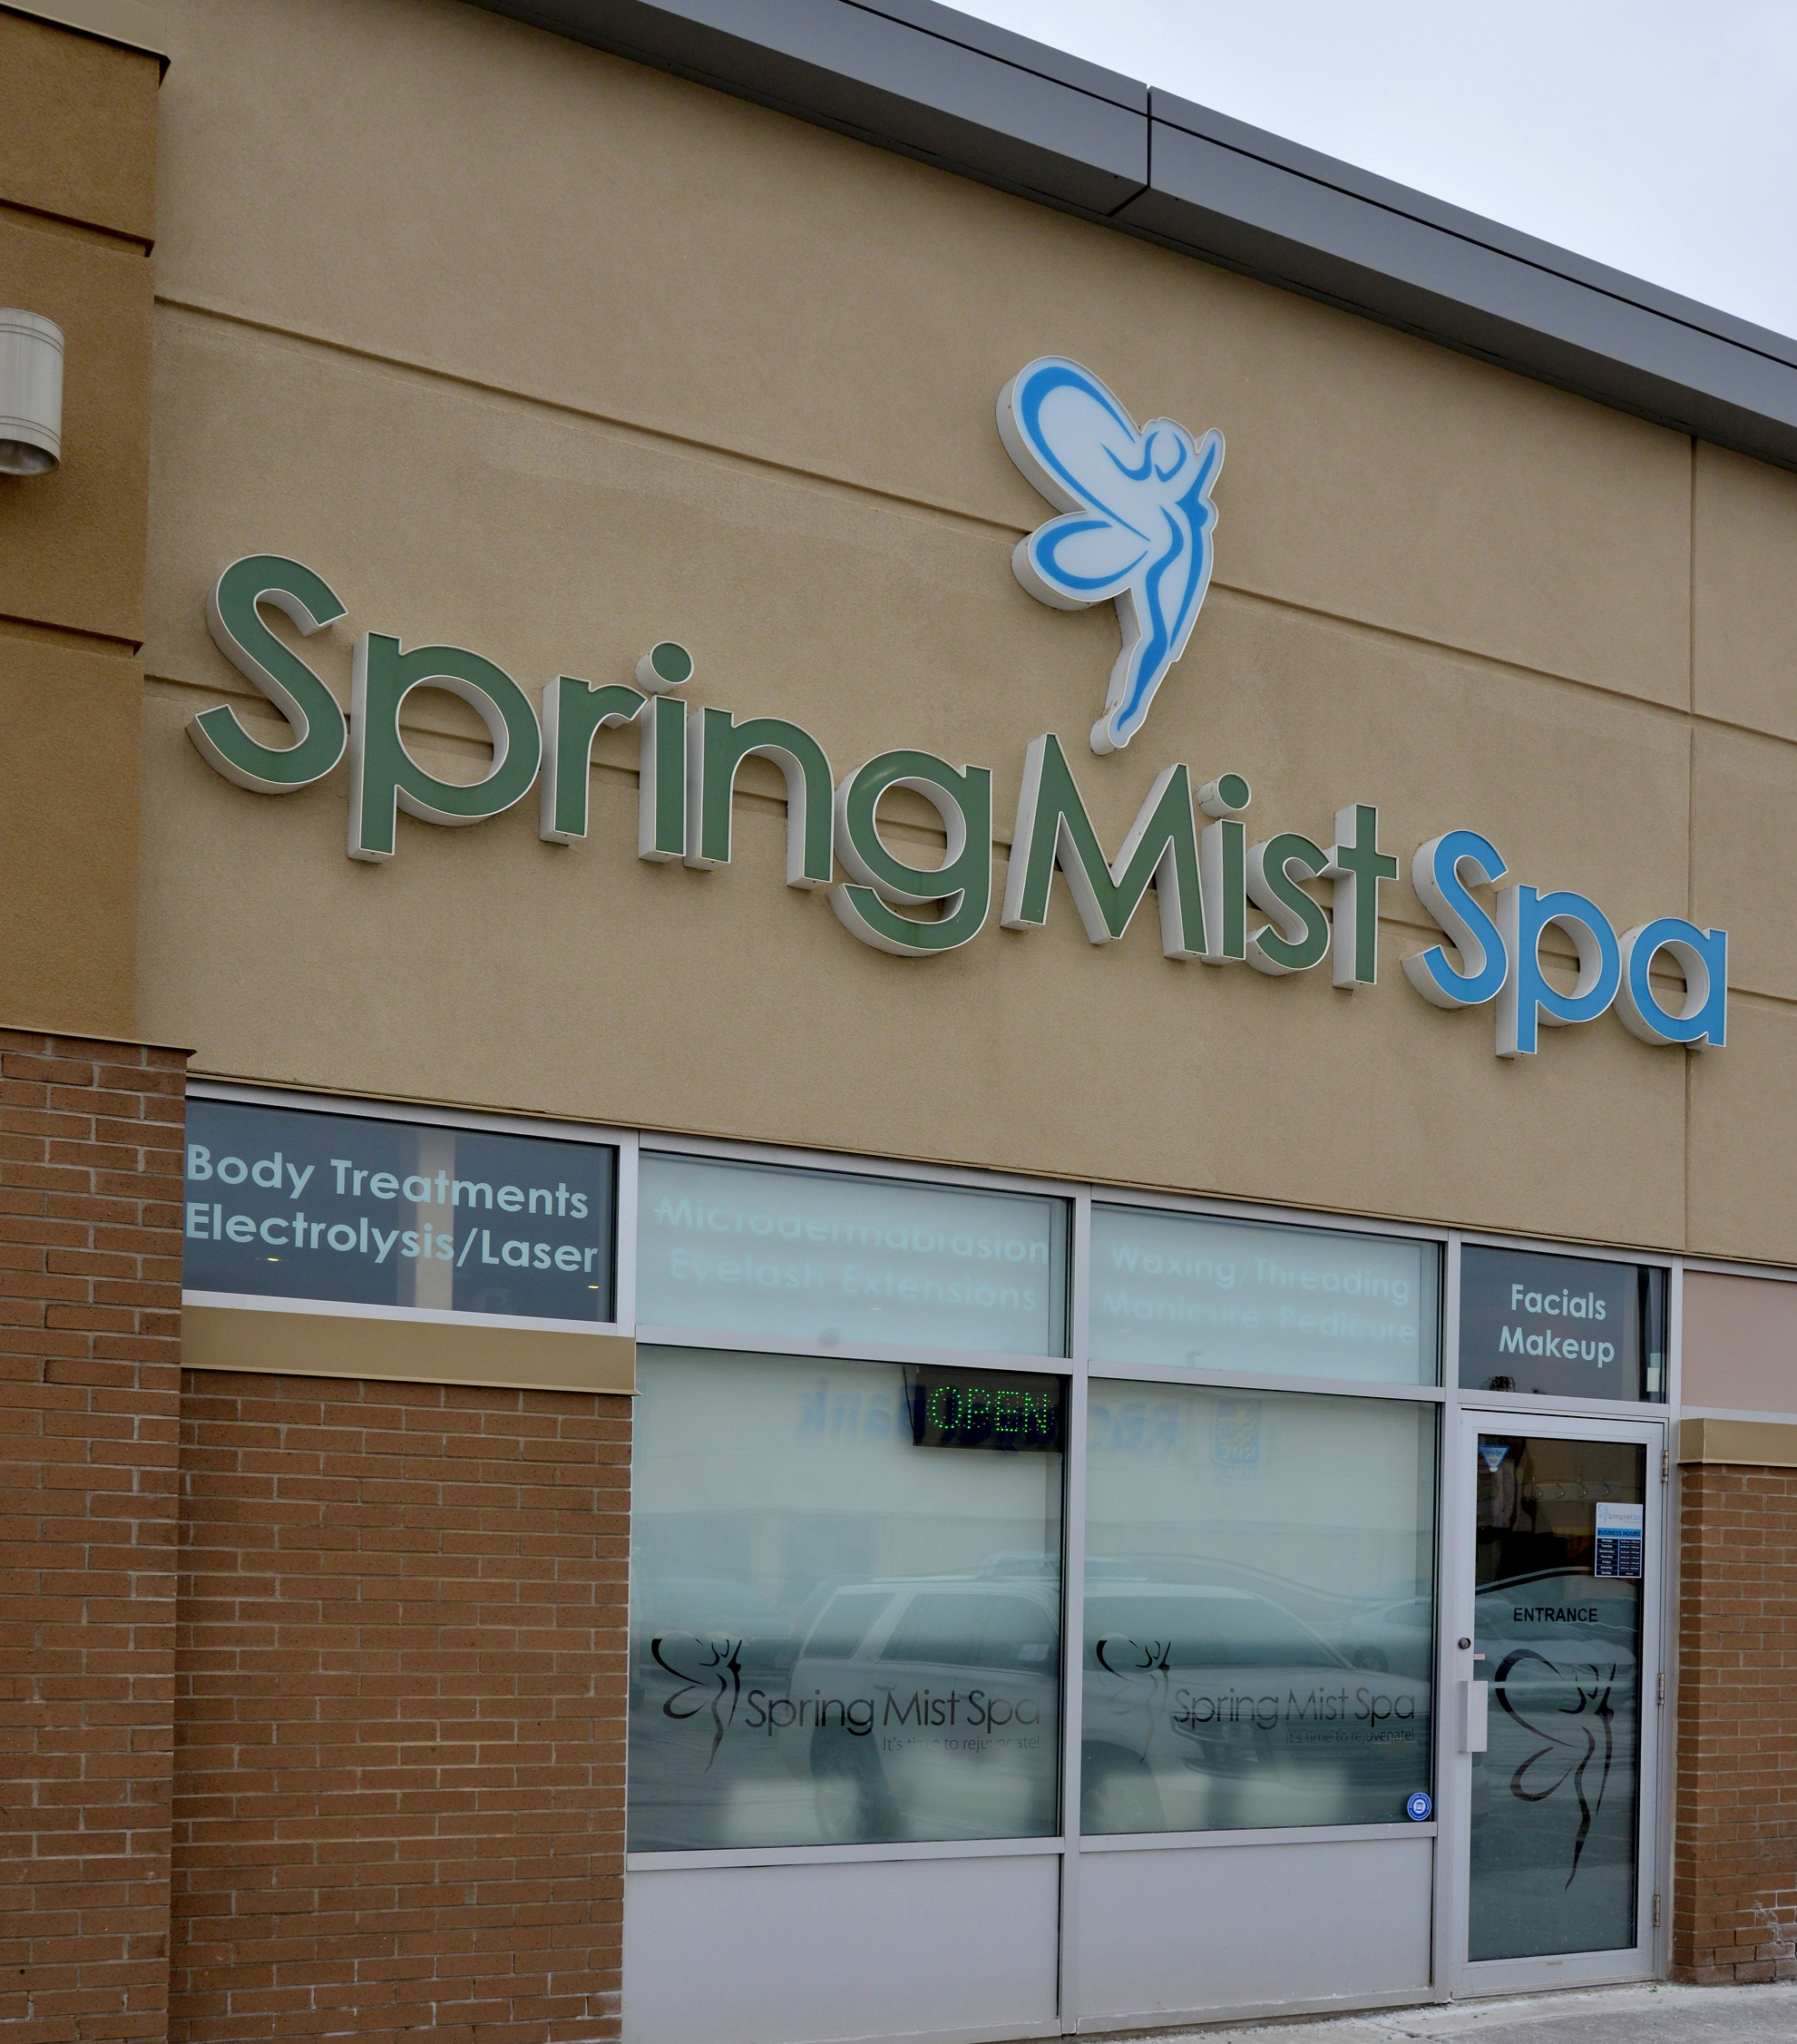 Spring Mist Spa - Contact and Business Hours